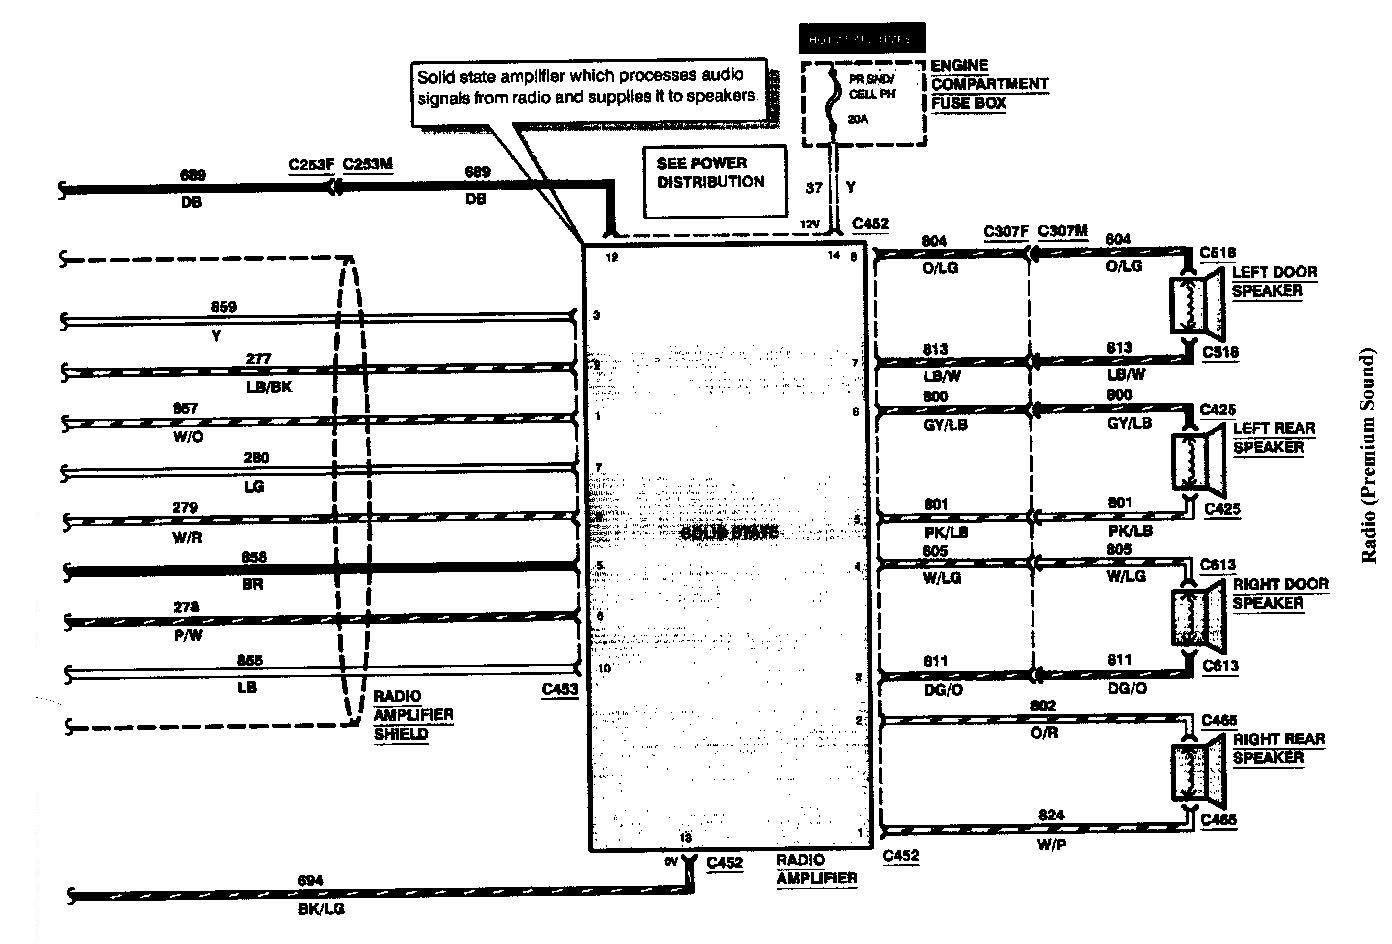 95Mark8 Premium Sound Wiring2 95 mark 8 jbl wiring diagram needed lincolns online message forum 1995 lincoln town car stereo wiring diagram at mifinder.co